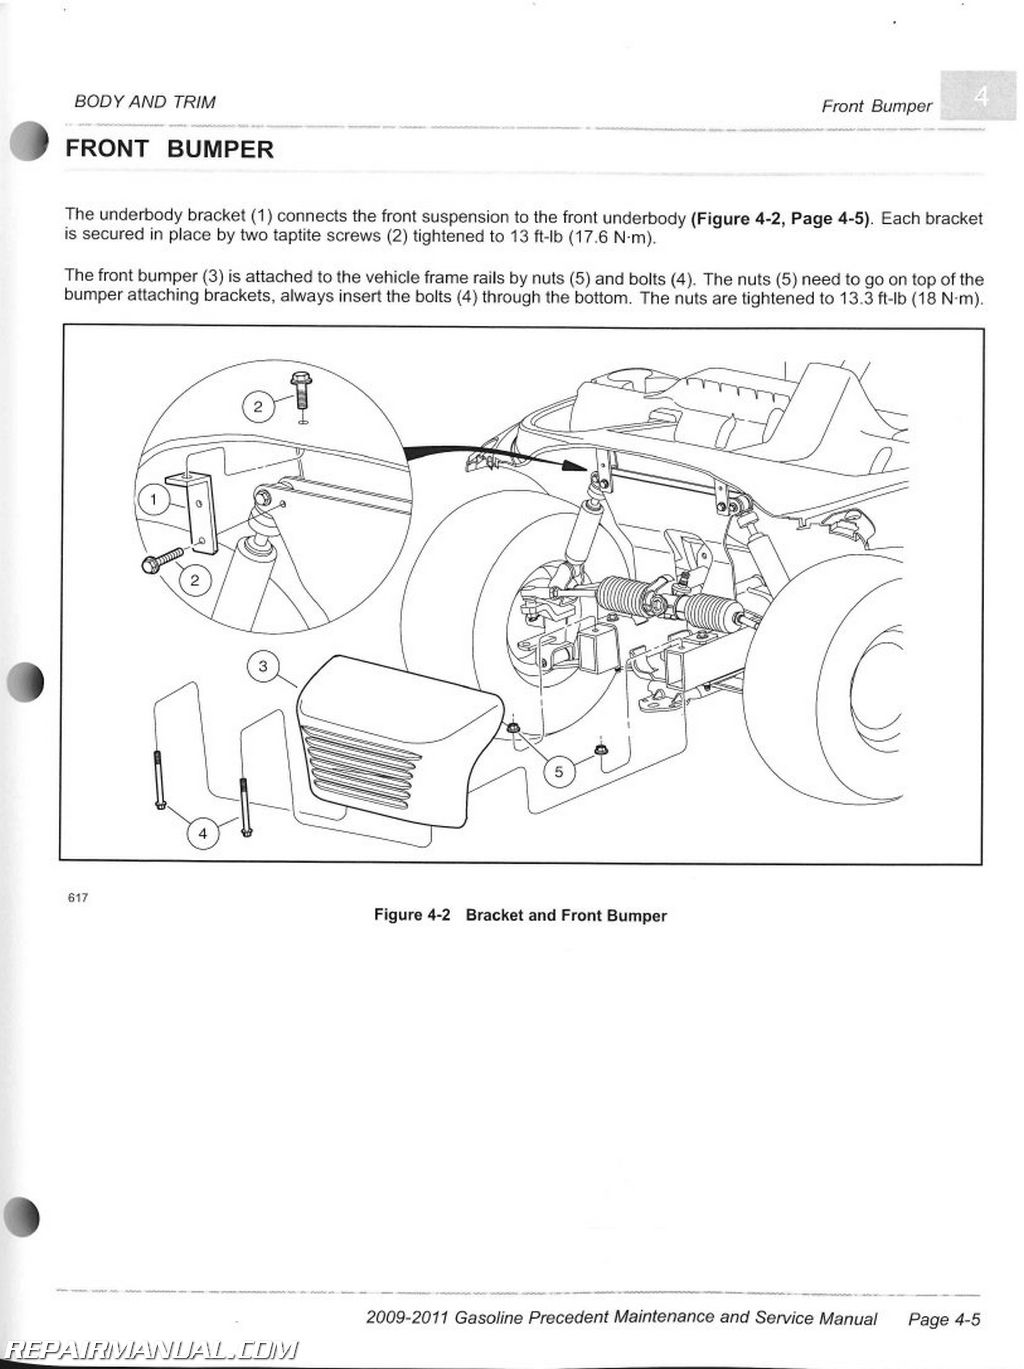 Club Car Gasoline Precedent Maintenance And Service Manual